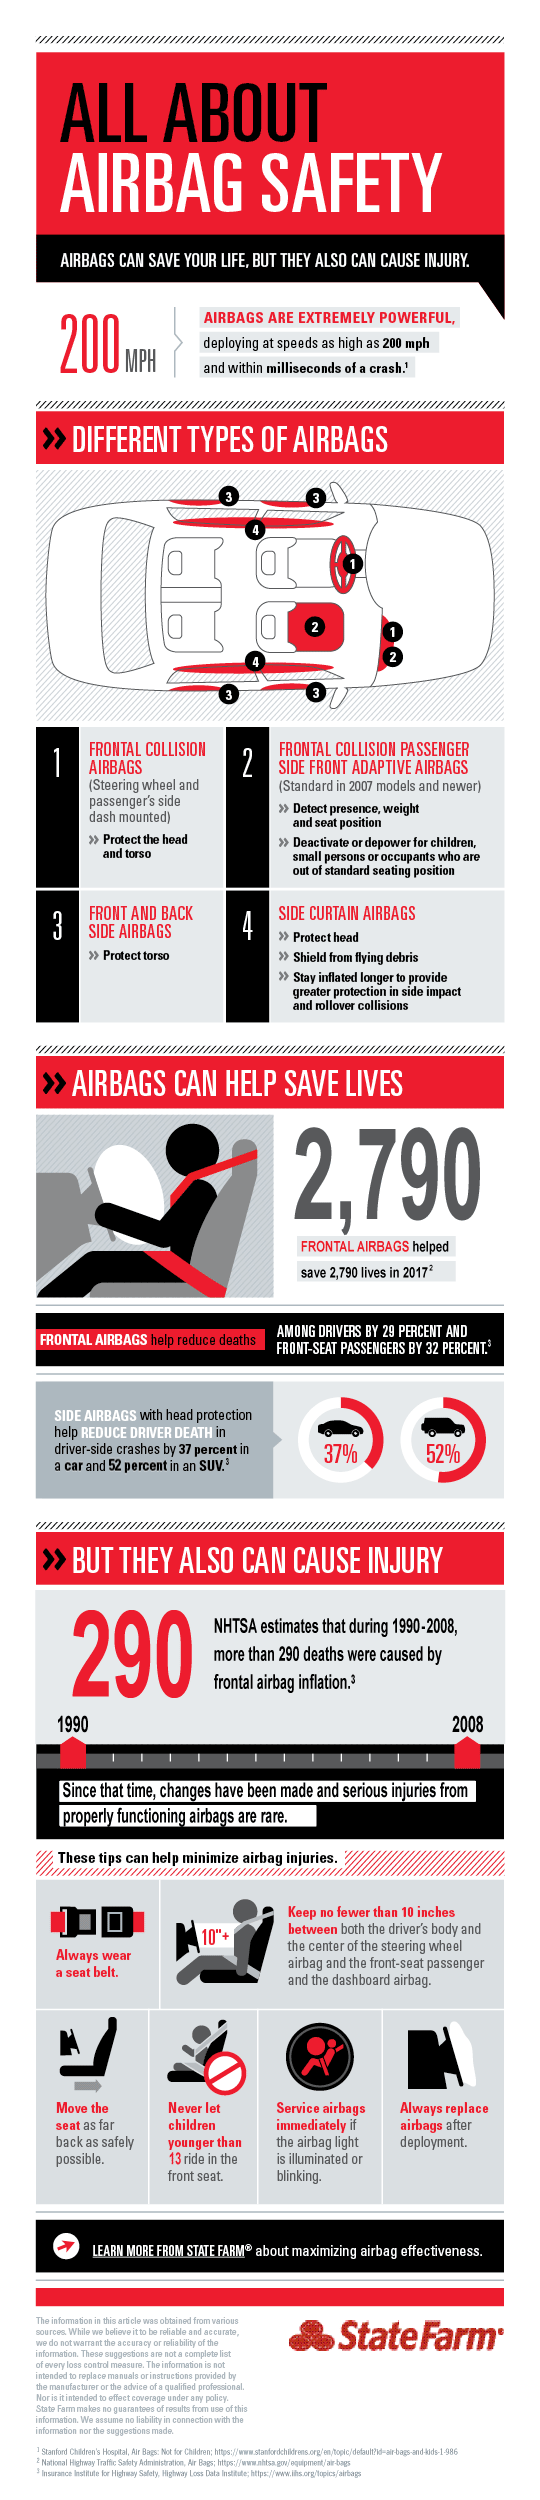 All About Airbag Safety infographic. A full description is available below the image.